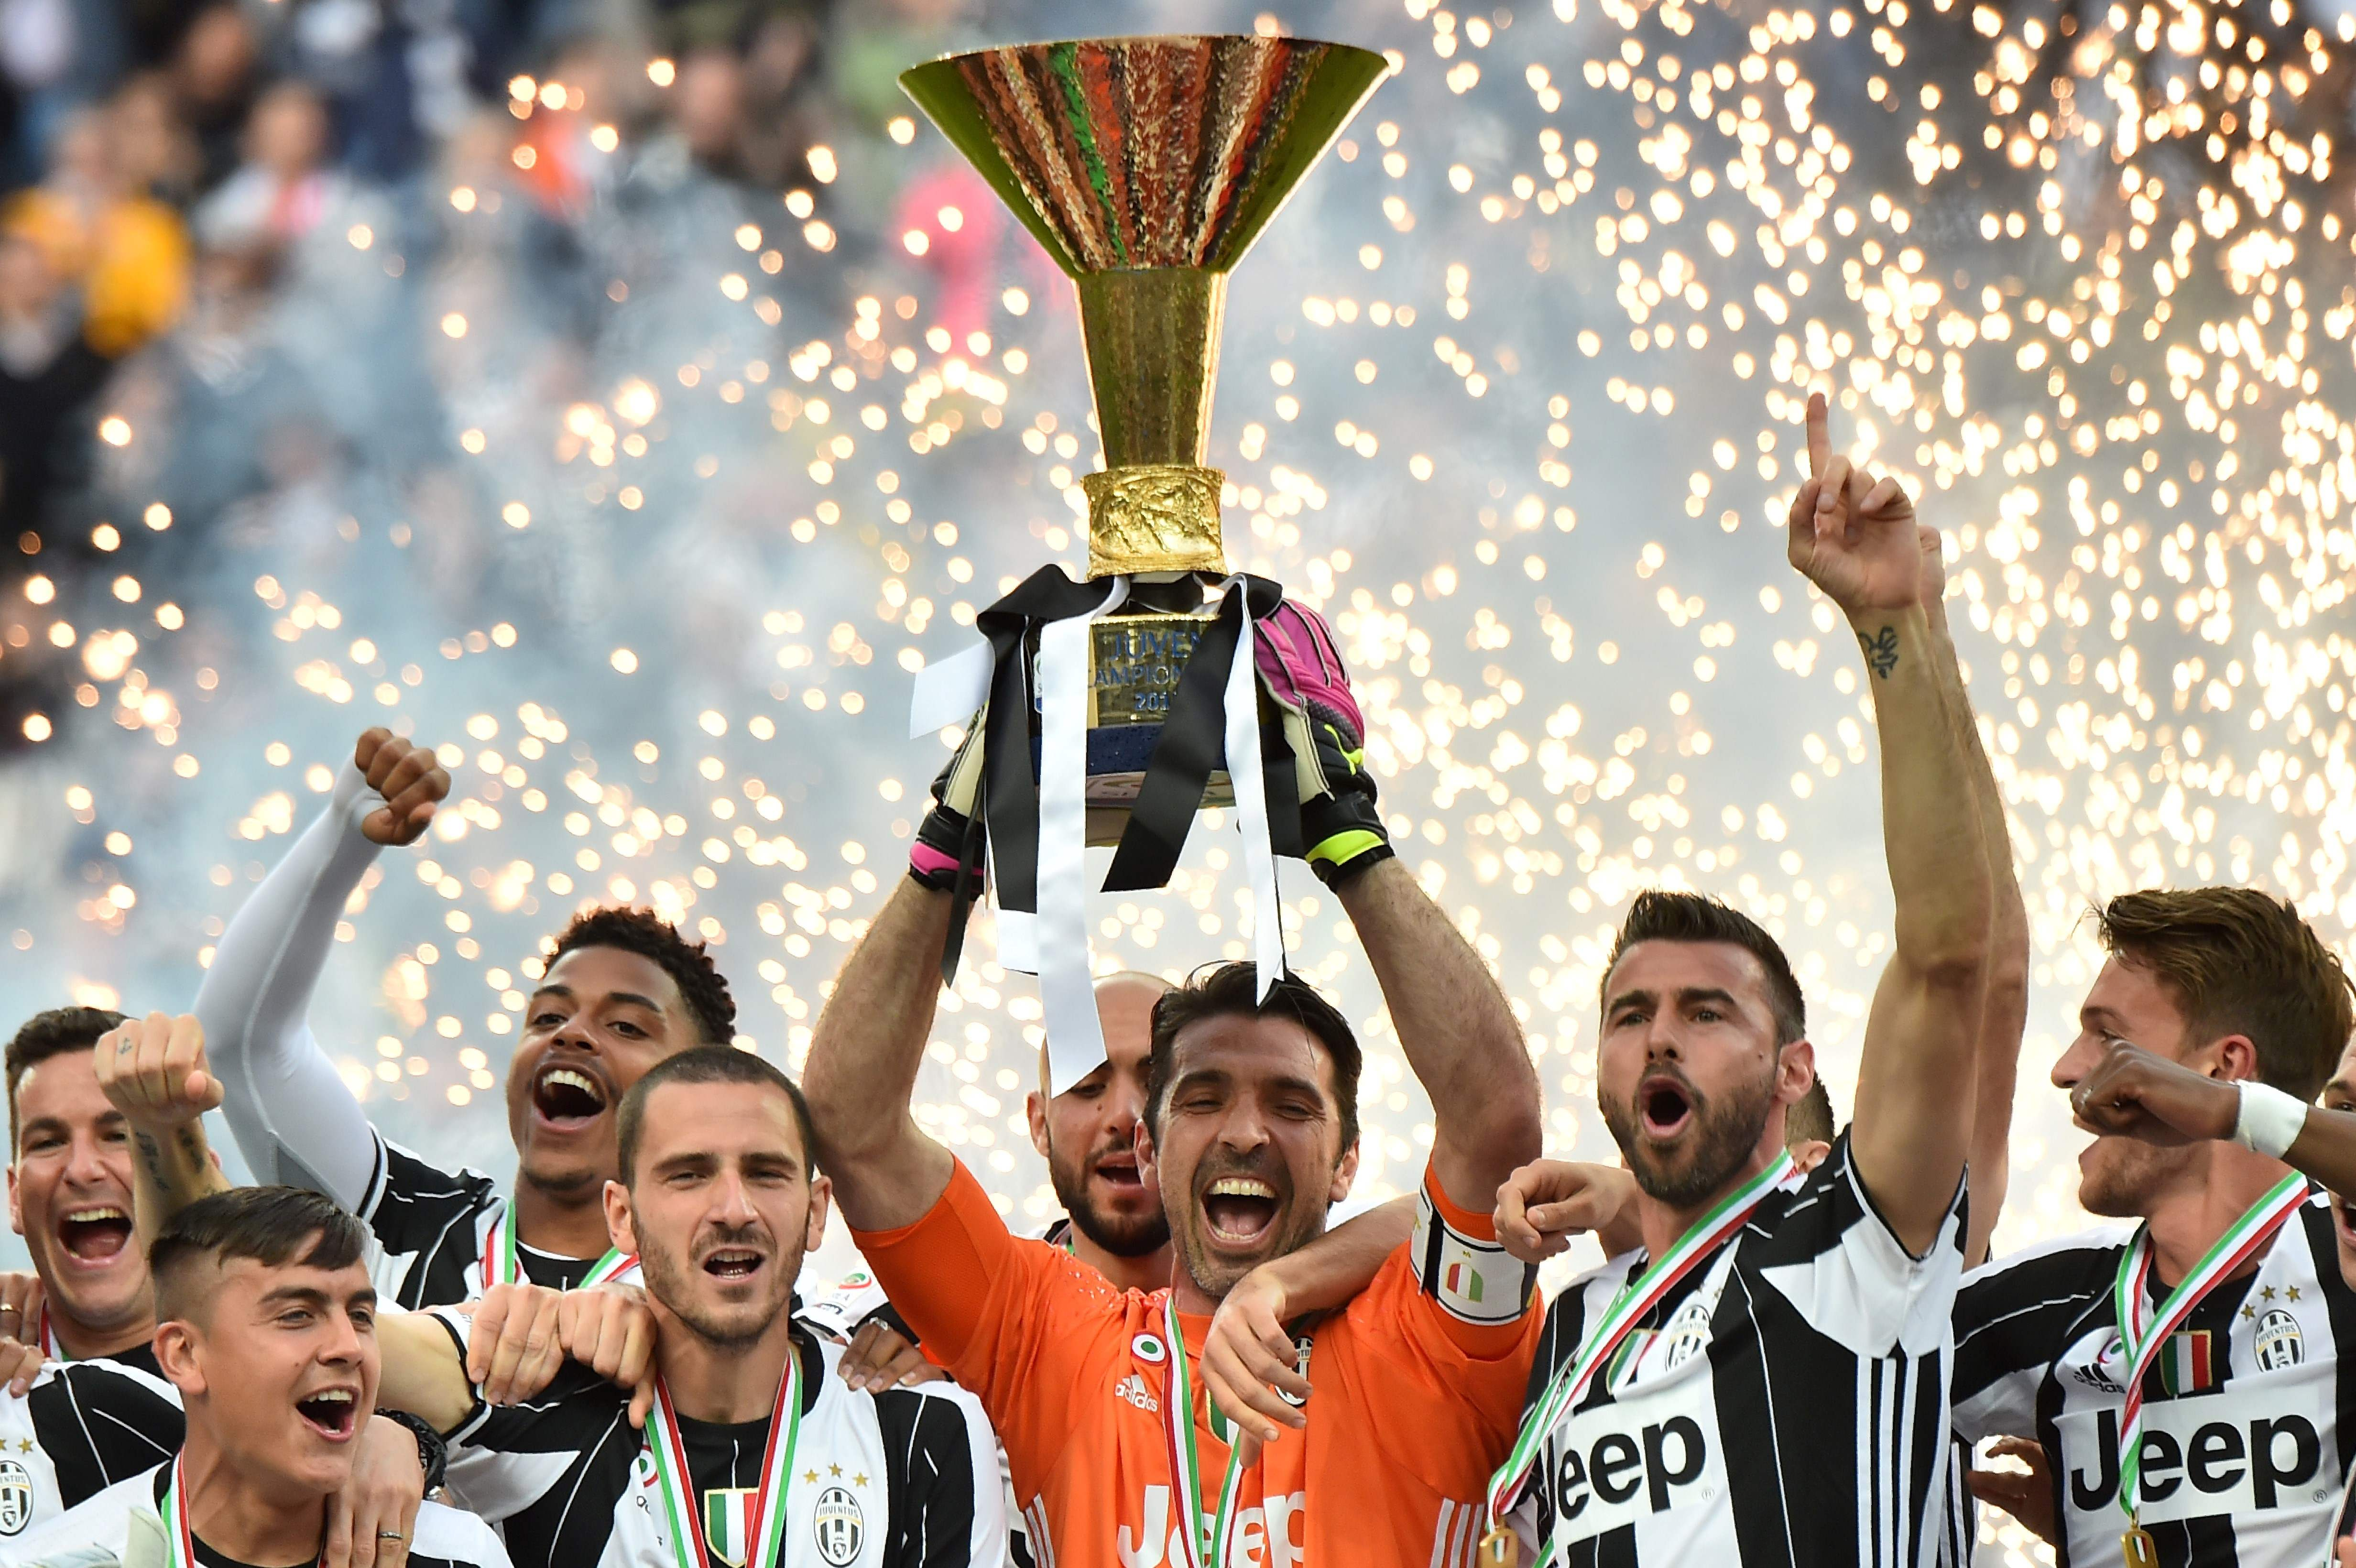 italia foto foto perayaan gelar scudetto juventus. Black Bedroom Furniture Sets. Home Design Ideas